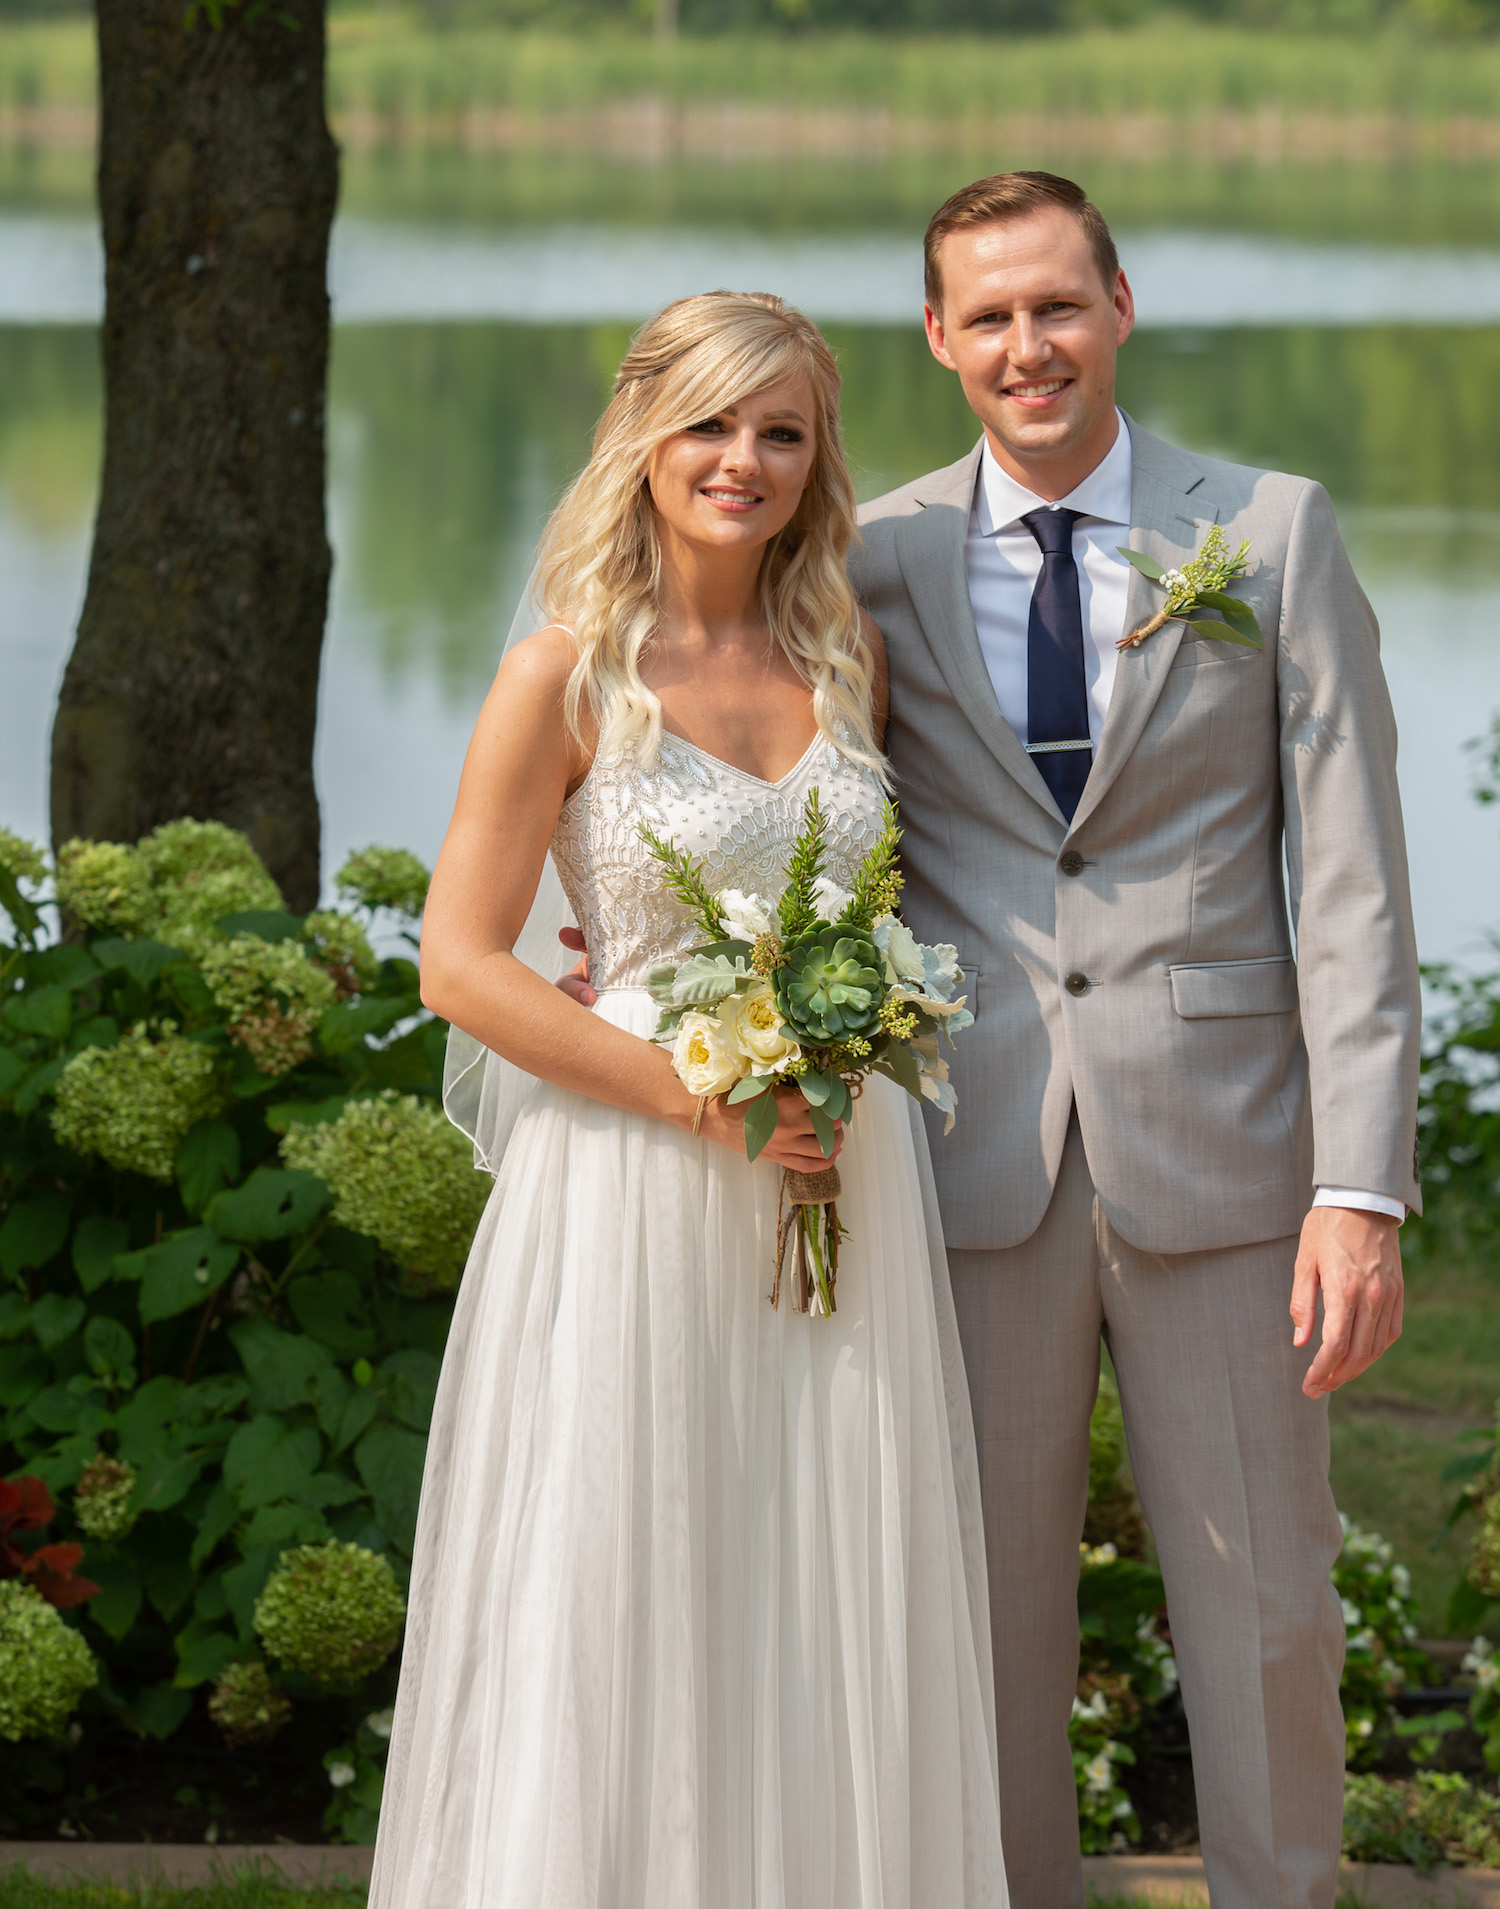 Cindyrellas Garden outdoor wedding ceremony by a private lake with wooded backdrops, bride in beaded top dress